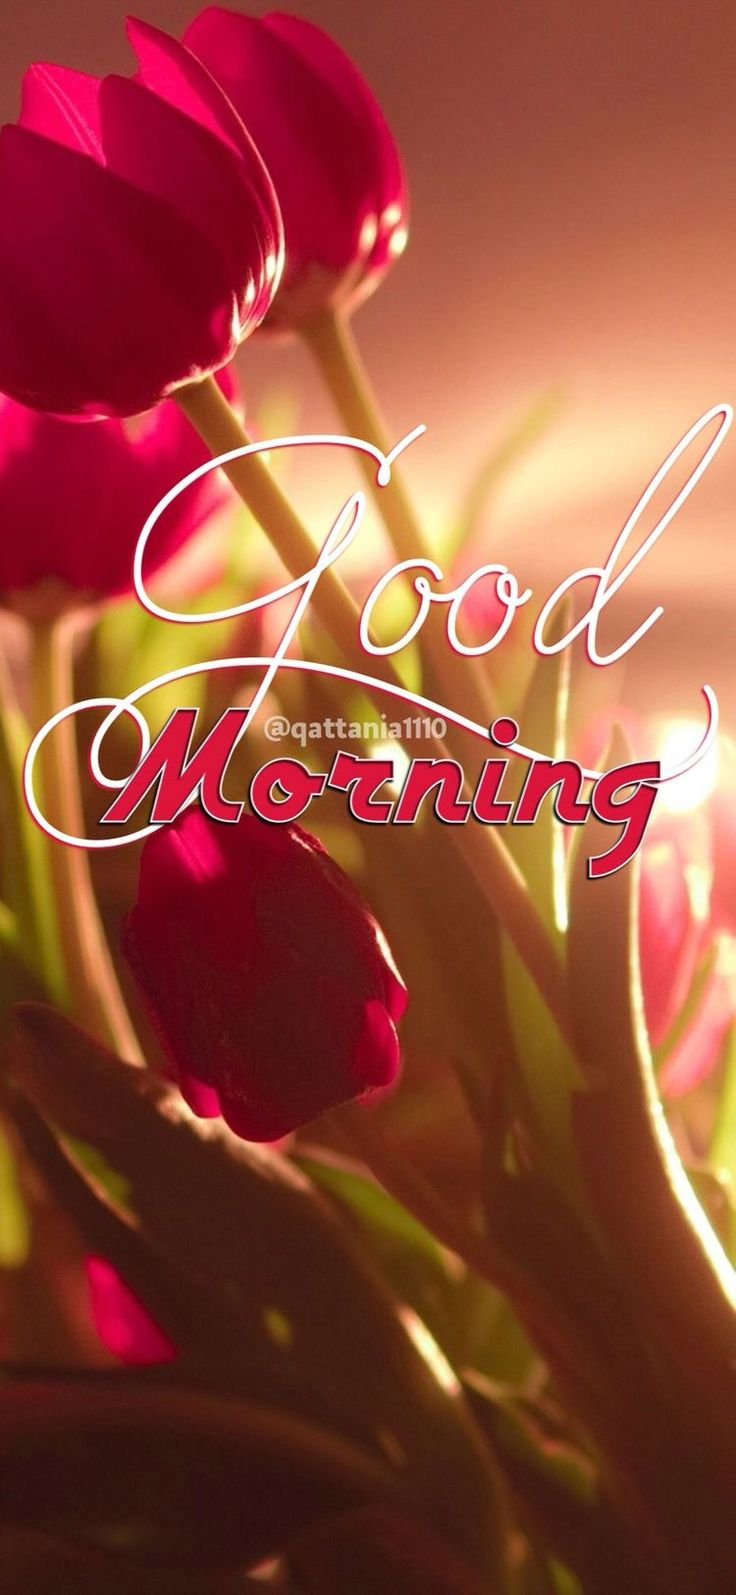 Good morning....have a lovely day